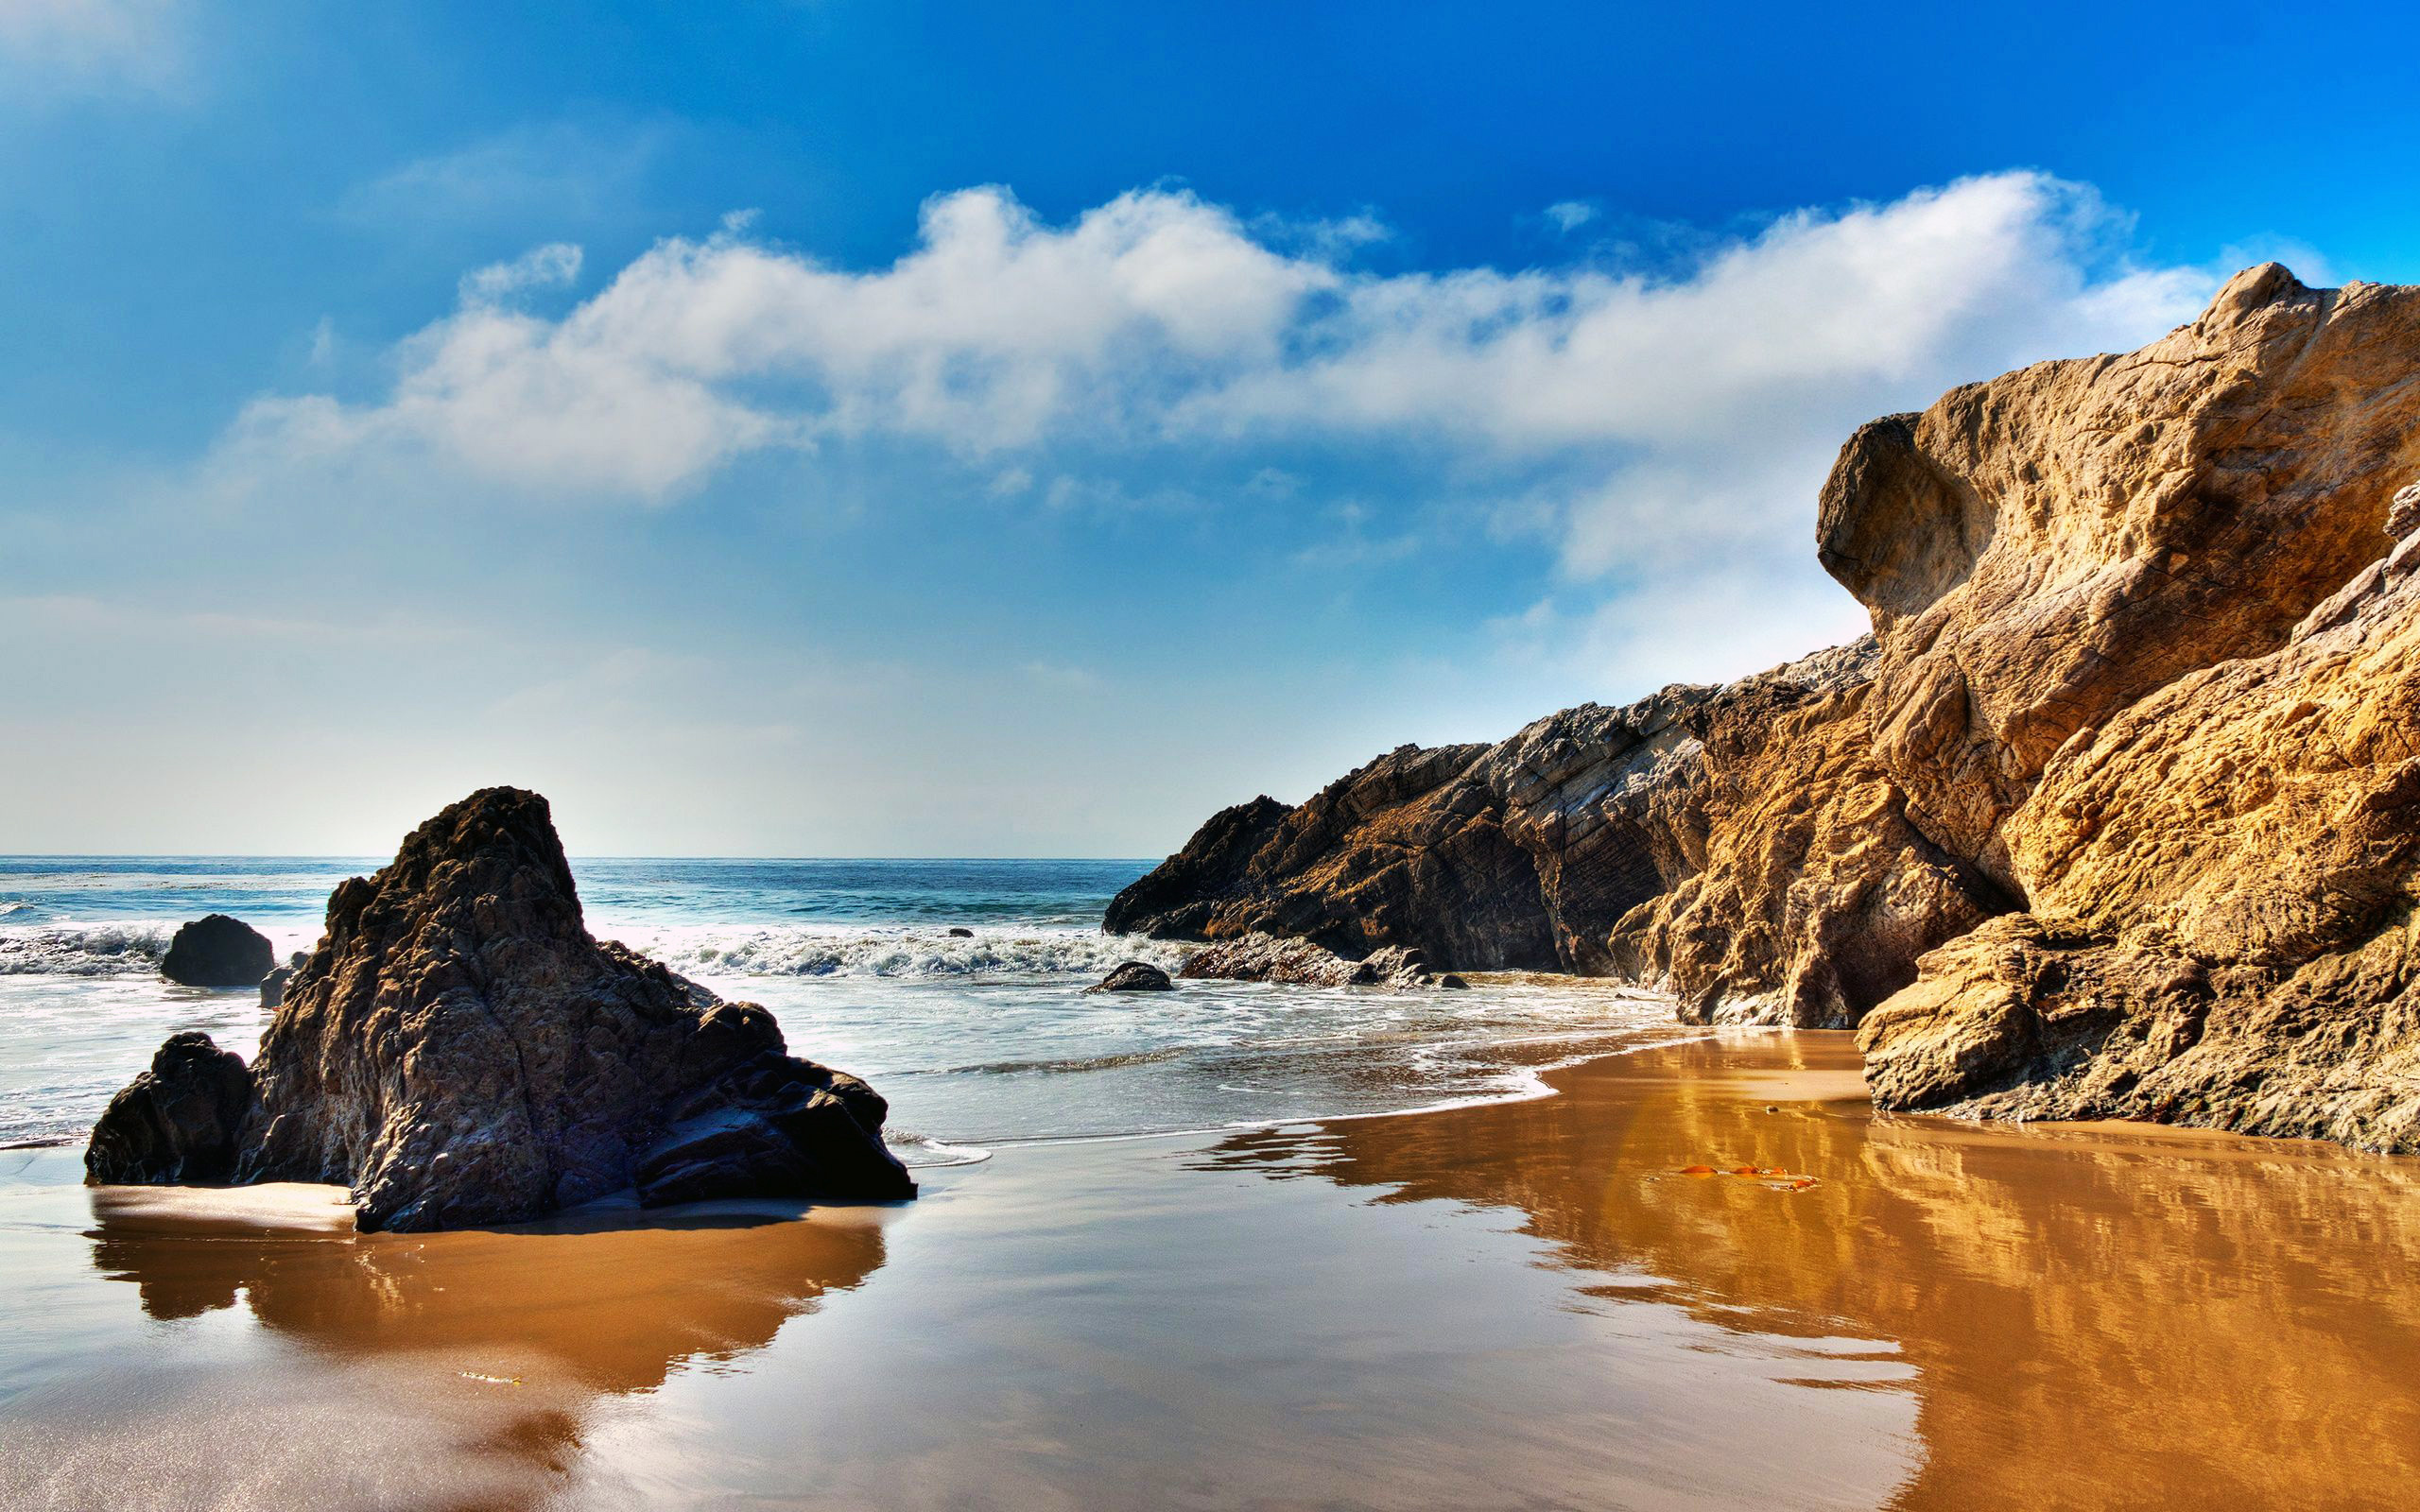 The Wallpaper Of Beach At The Pacific Ocean In Malibu